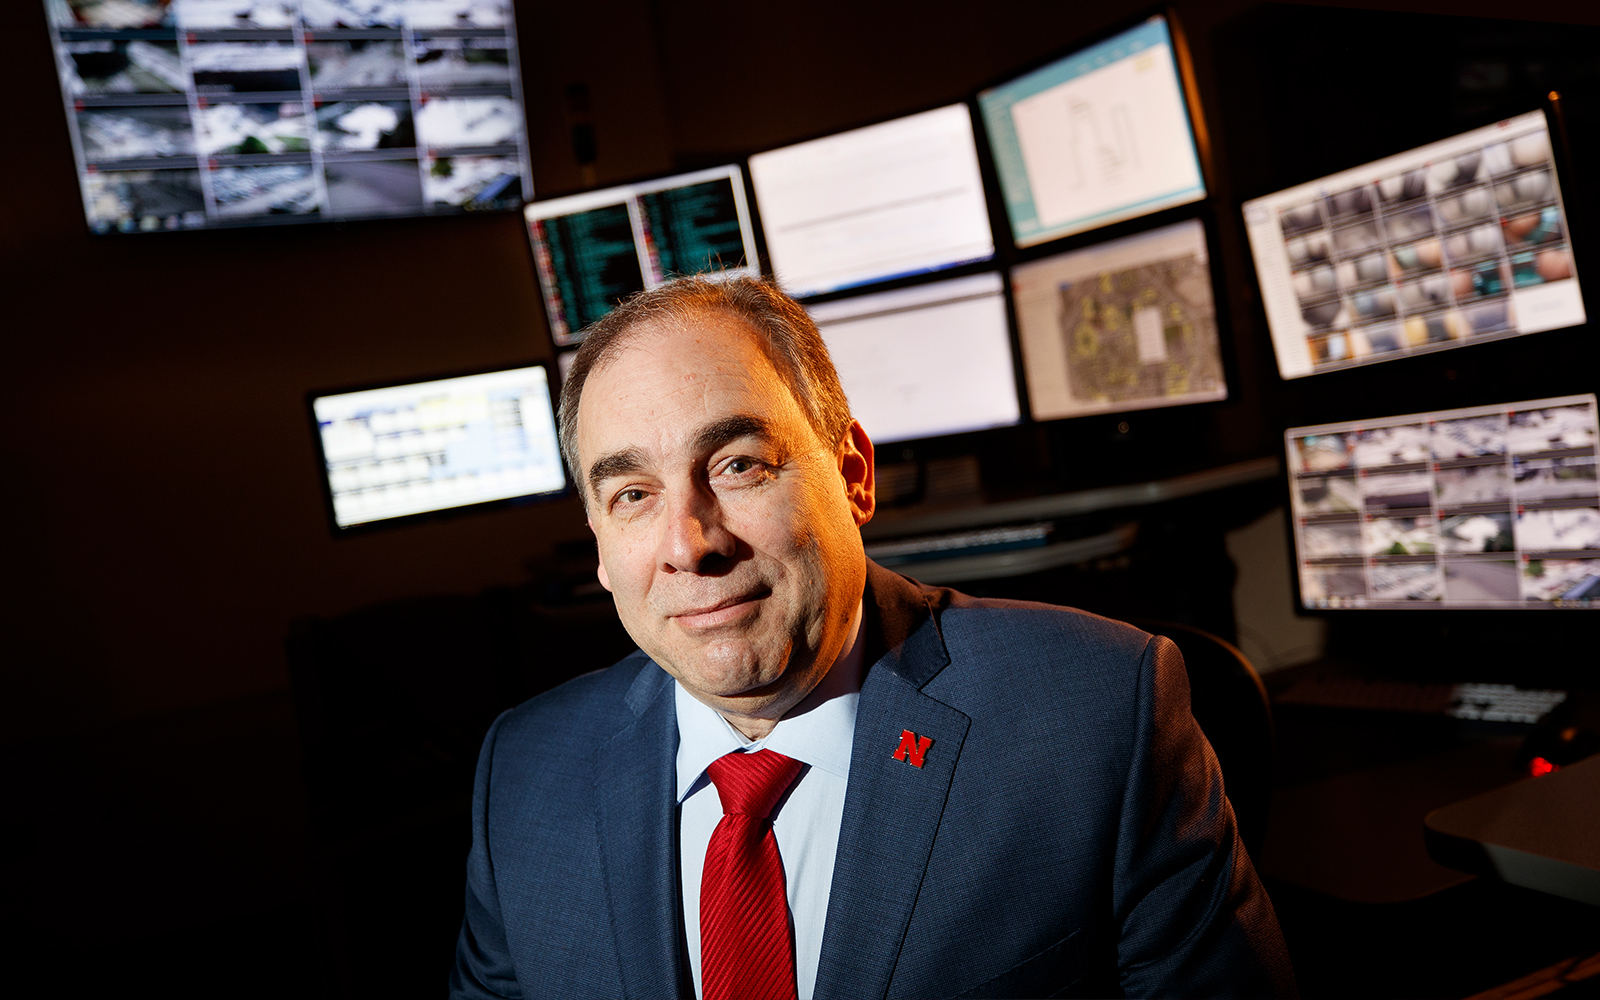 Mario Scalora poses in front of computer screens